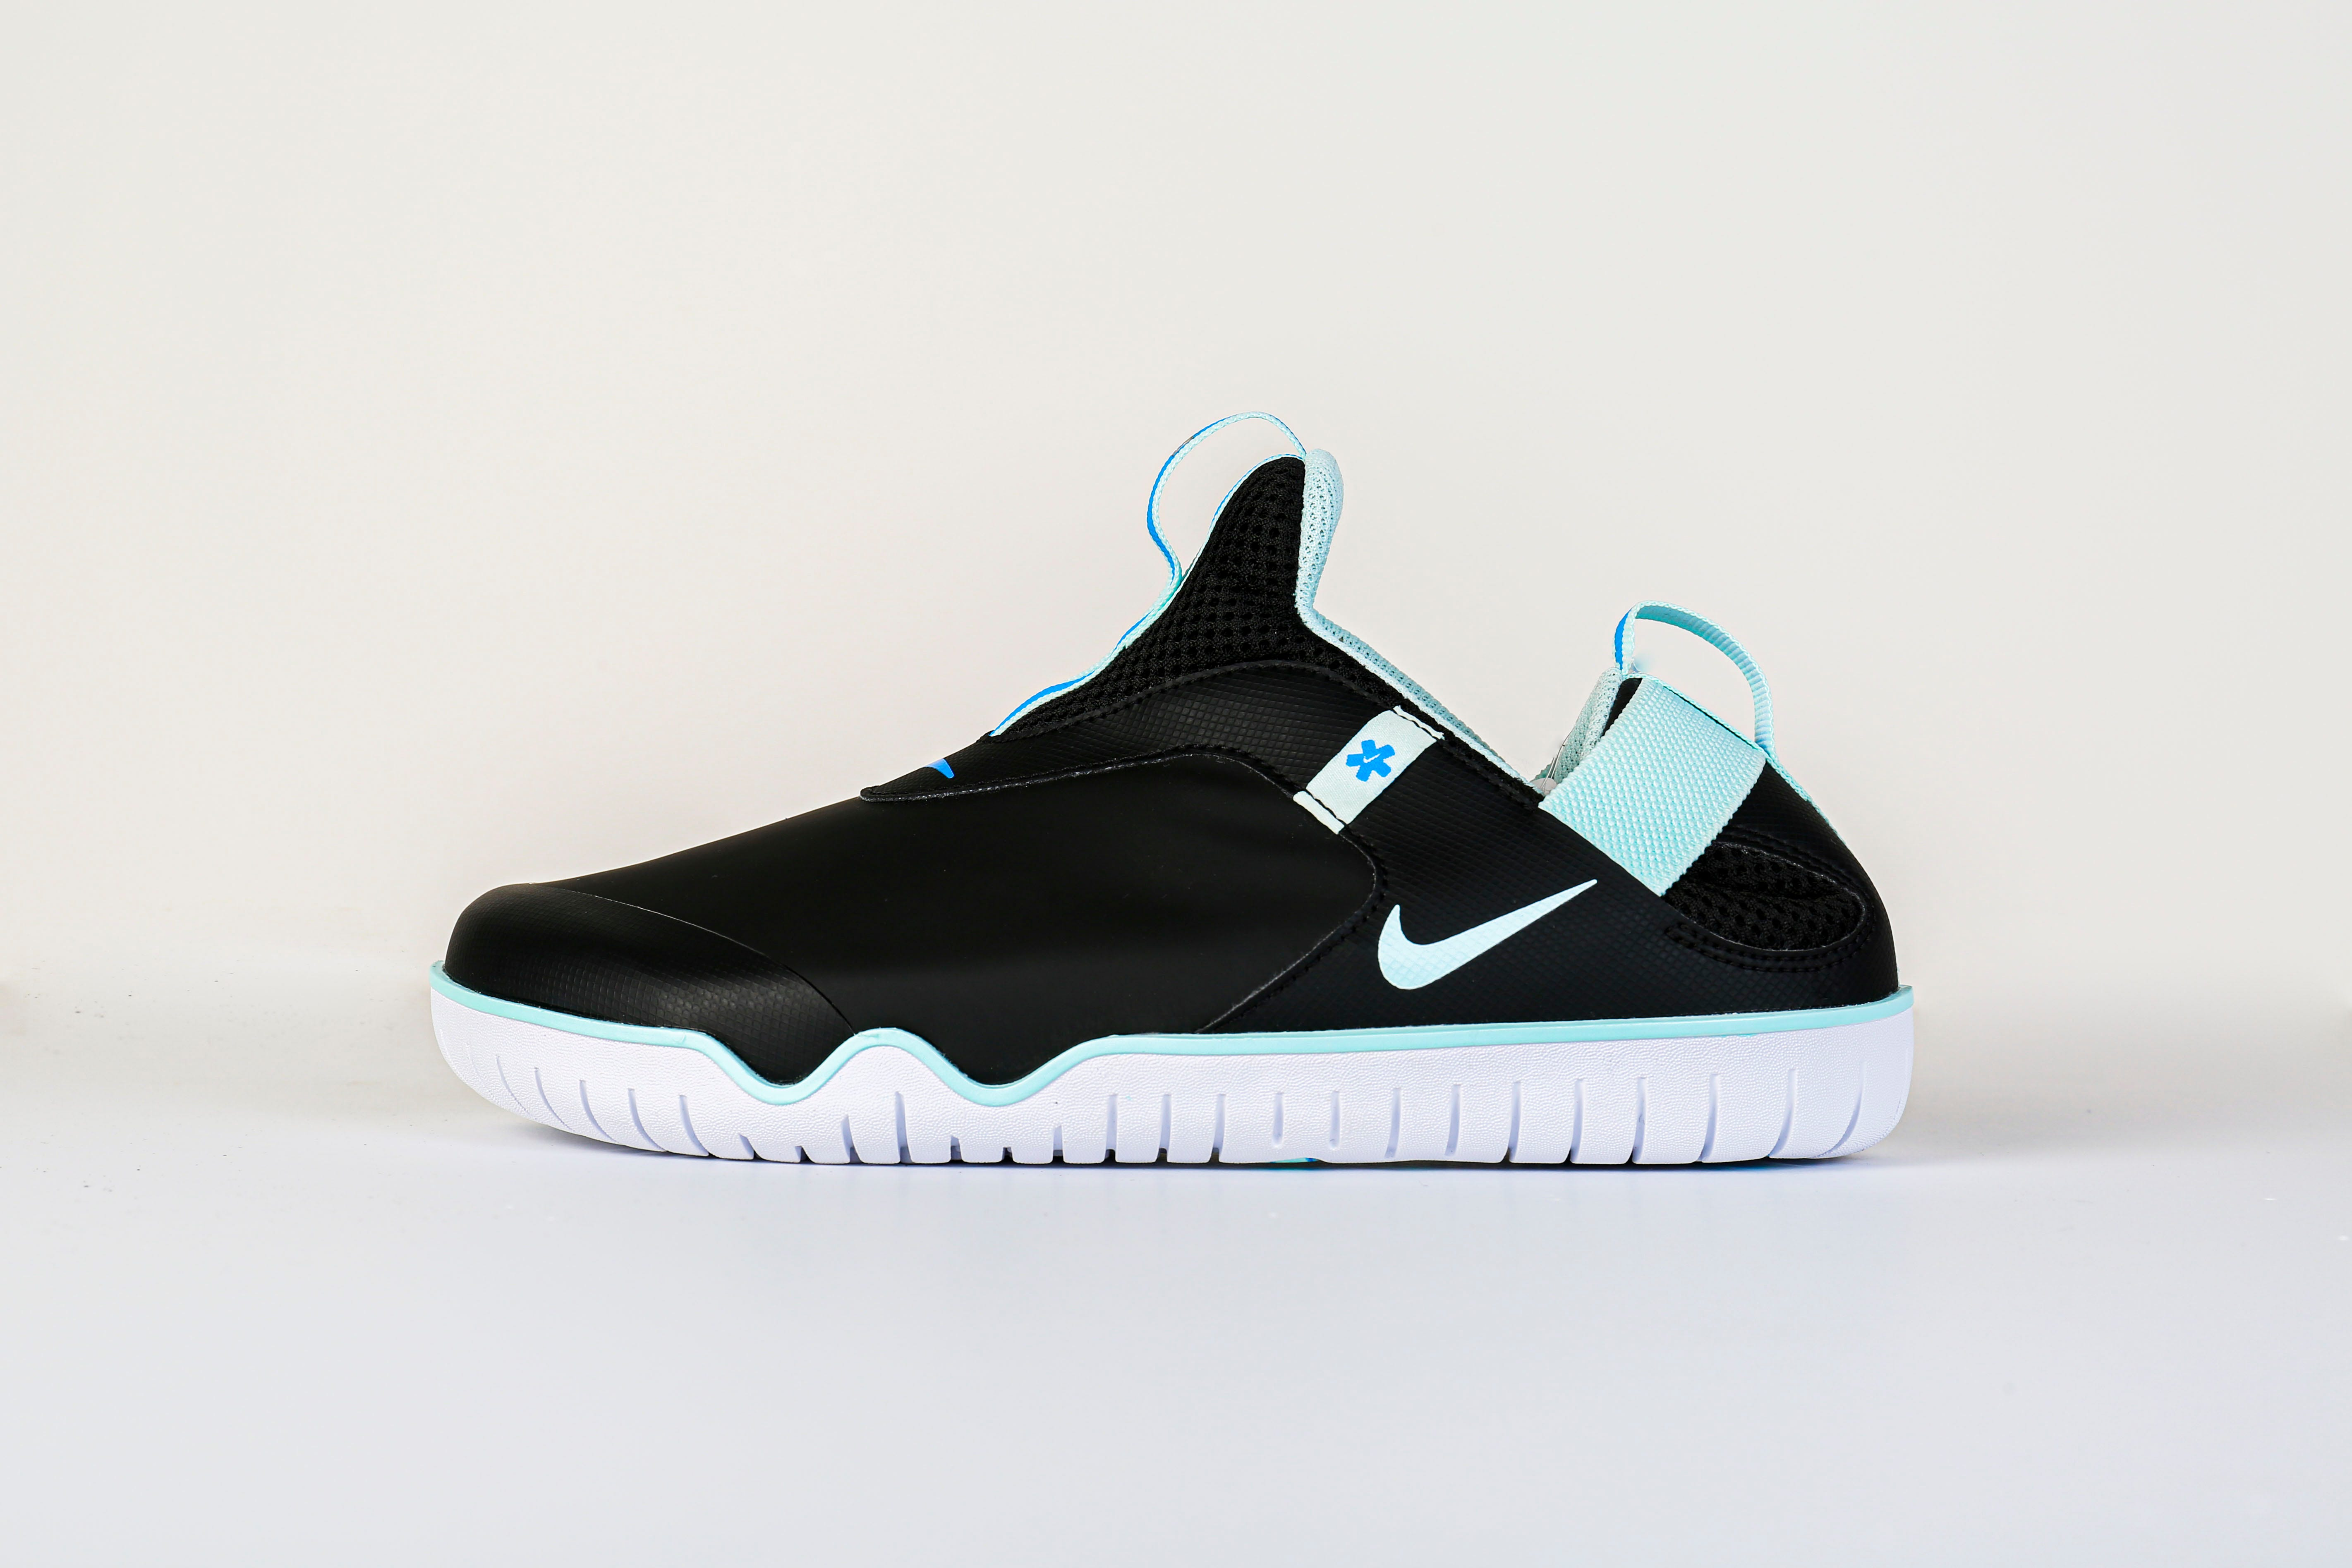 Nike Air Zoom Pulse: Shoes for